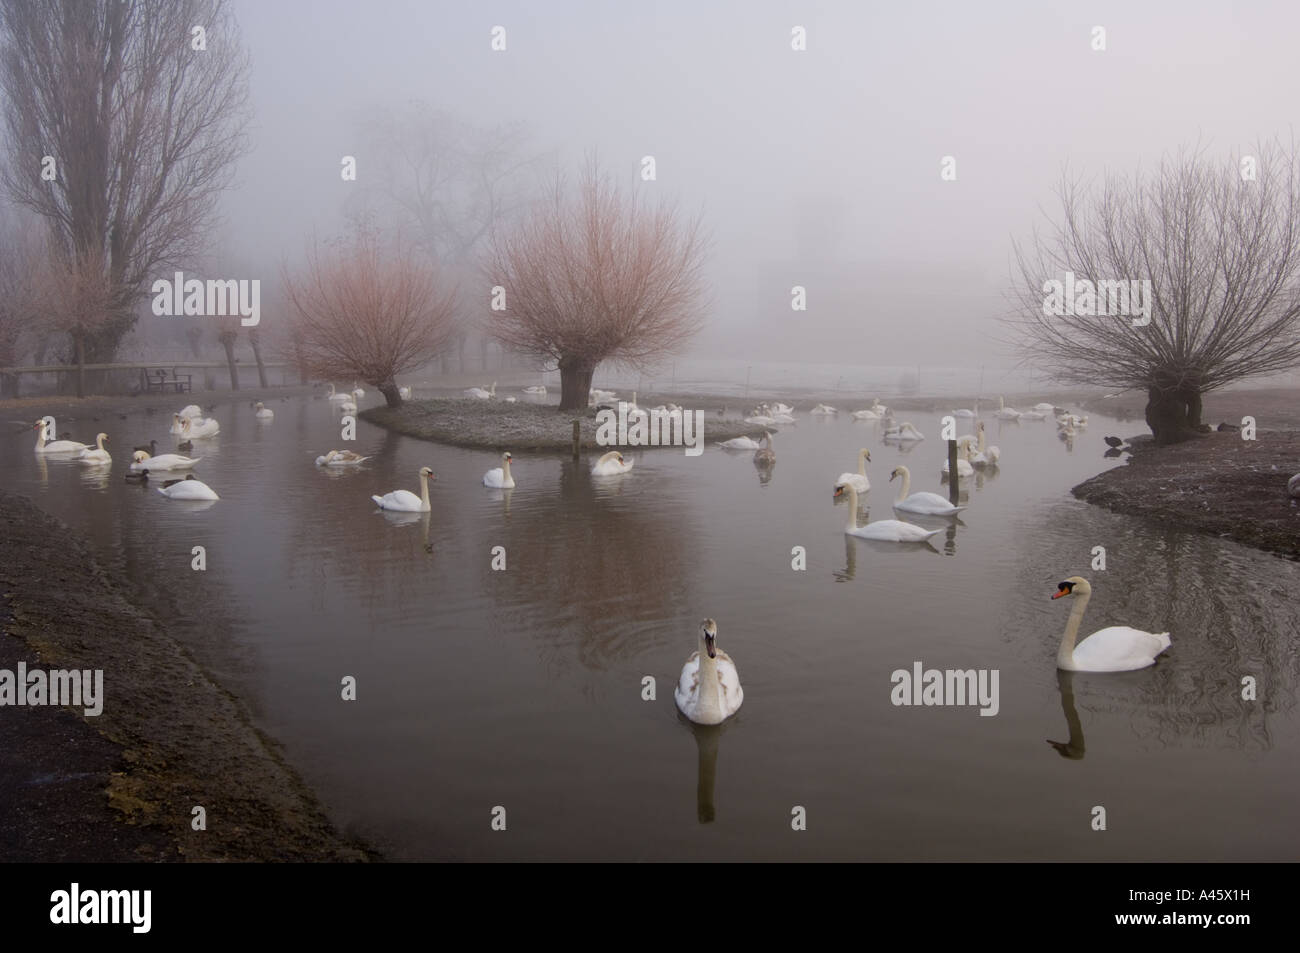 wildfowl-wetlands-trust-bird-reserve-slimbridge-gloucestershire-uk-A45X1H.jpg